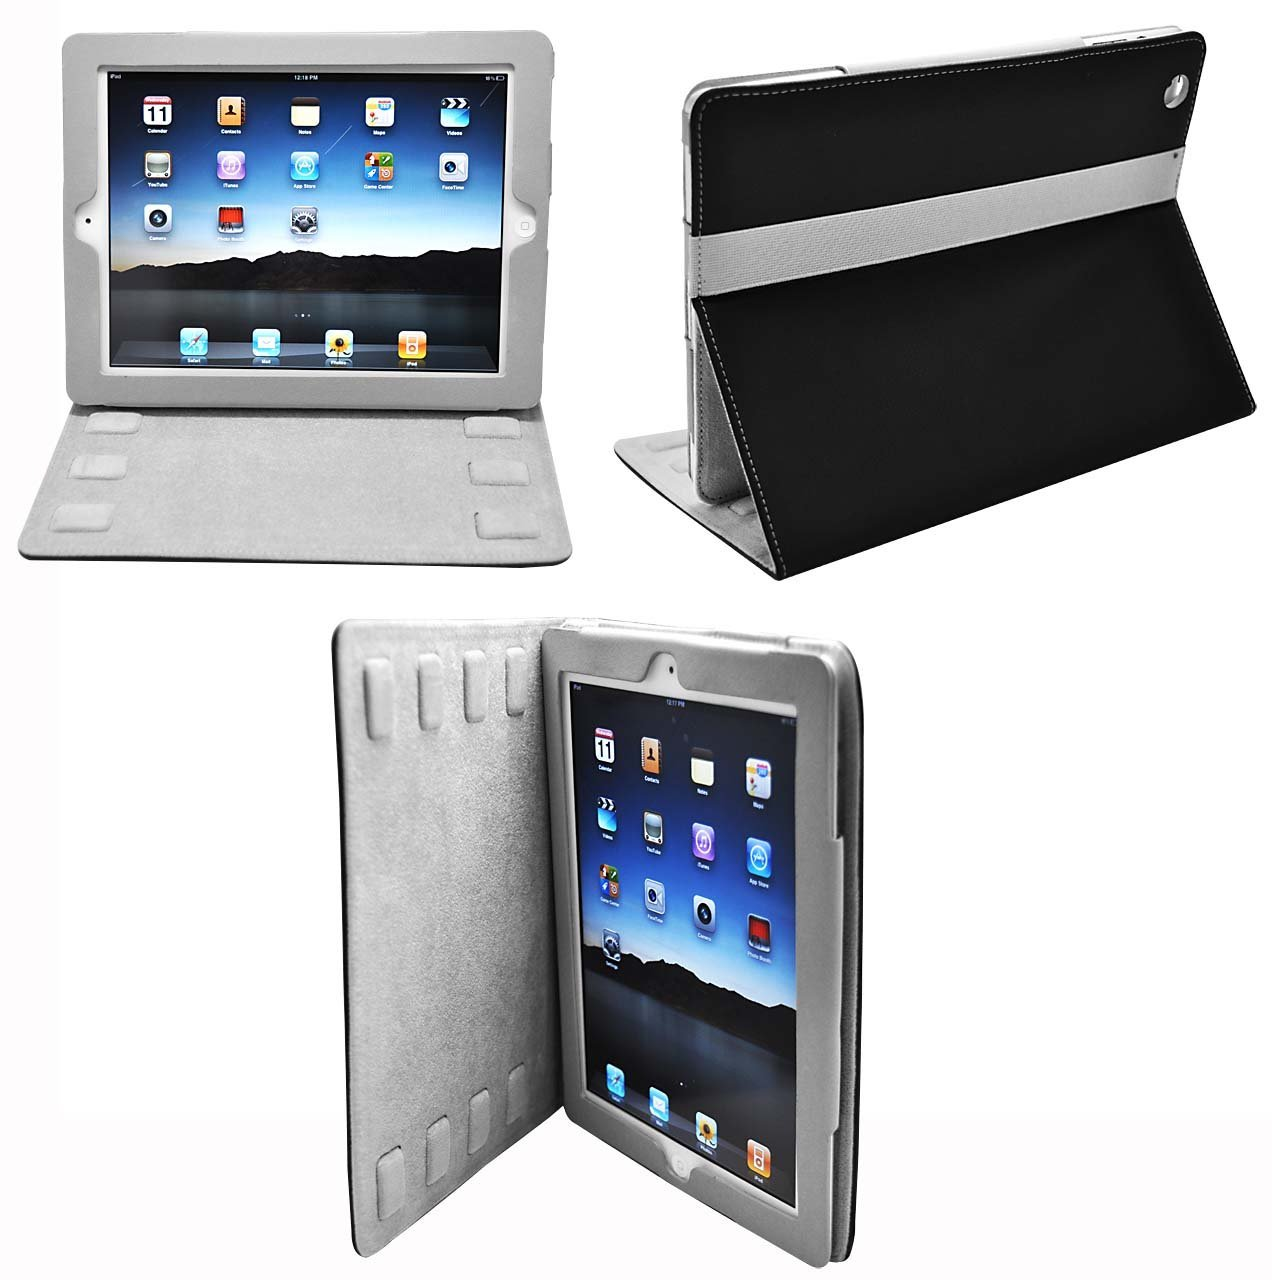 Iconic-2 Designer Case for iPad Air